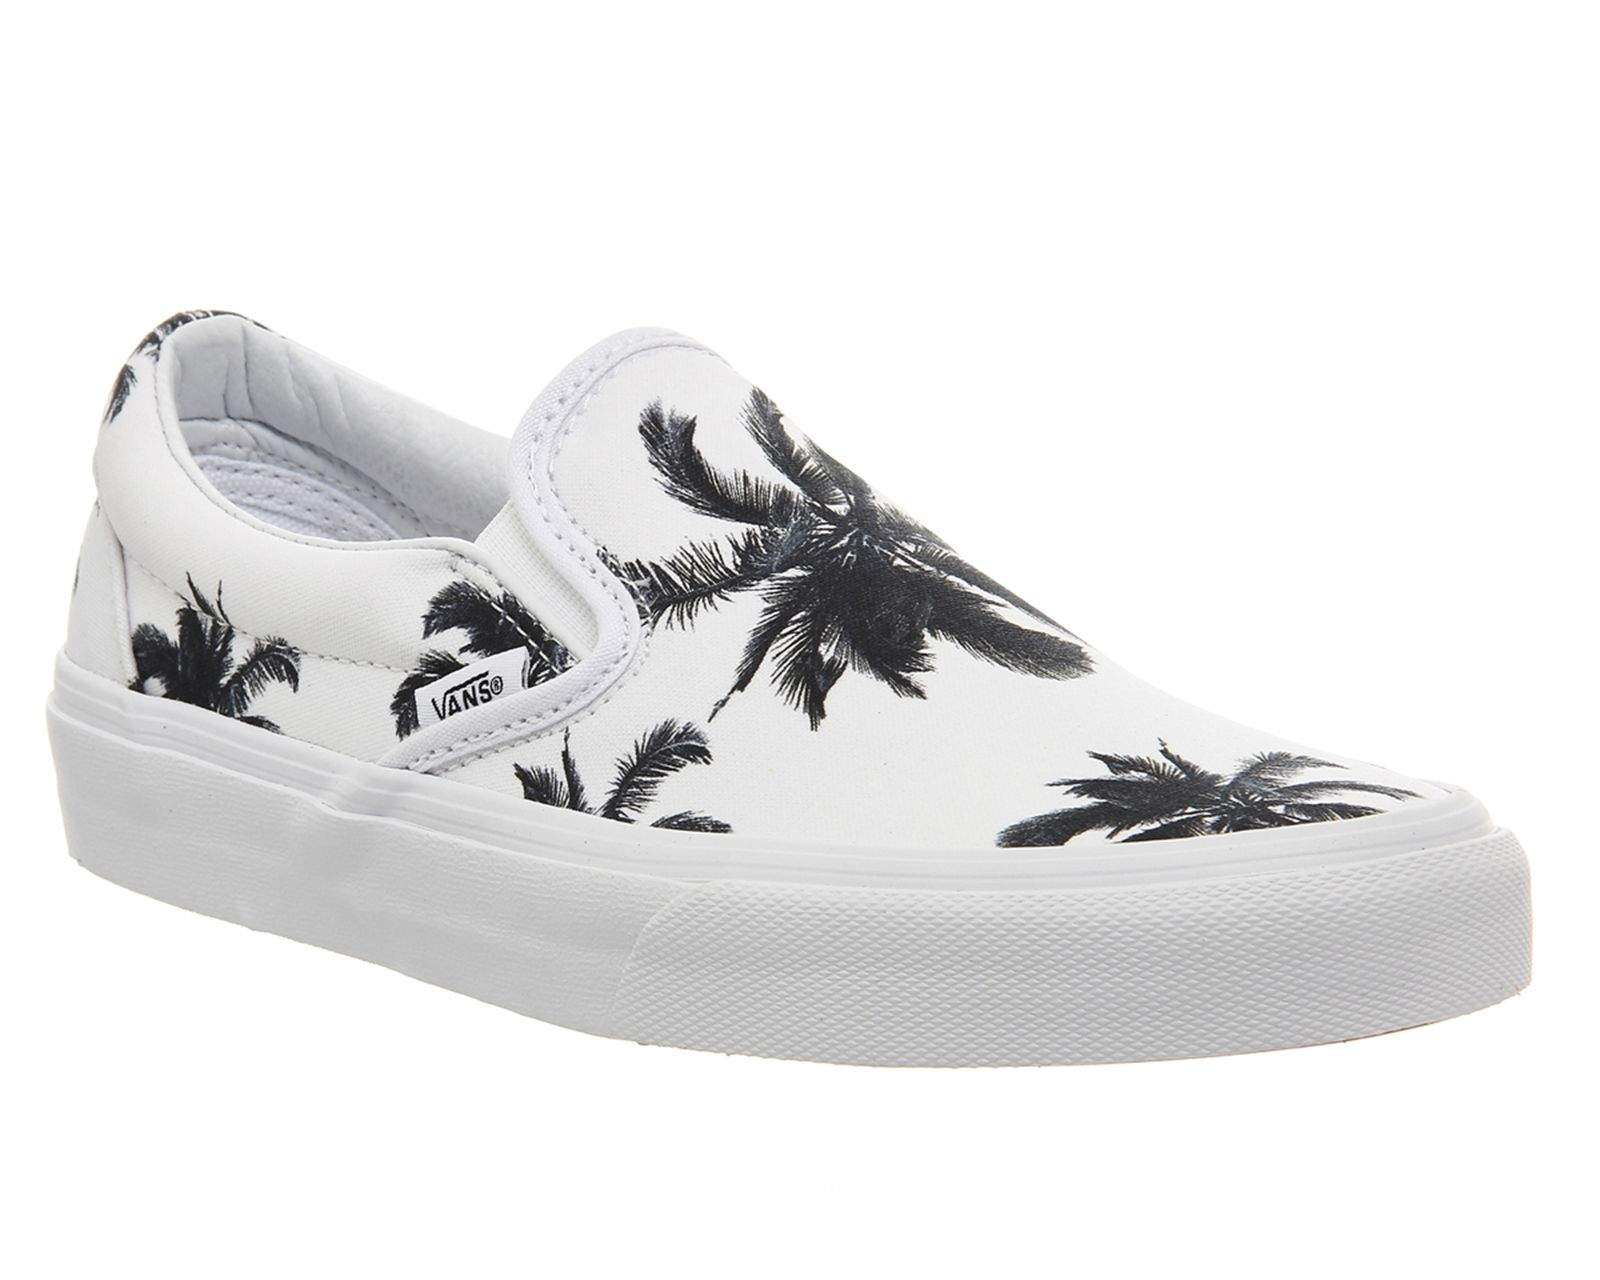 U CLASSIC SLIP-ON FLORAL LEATHER - CALZADO - Sneakers & Deportivas Vans WLEl9